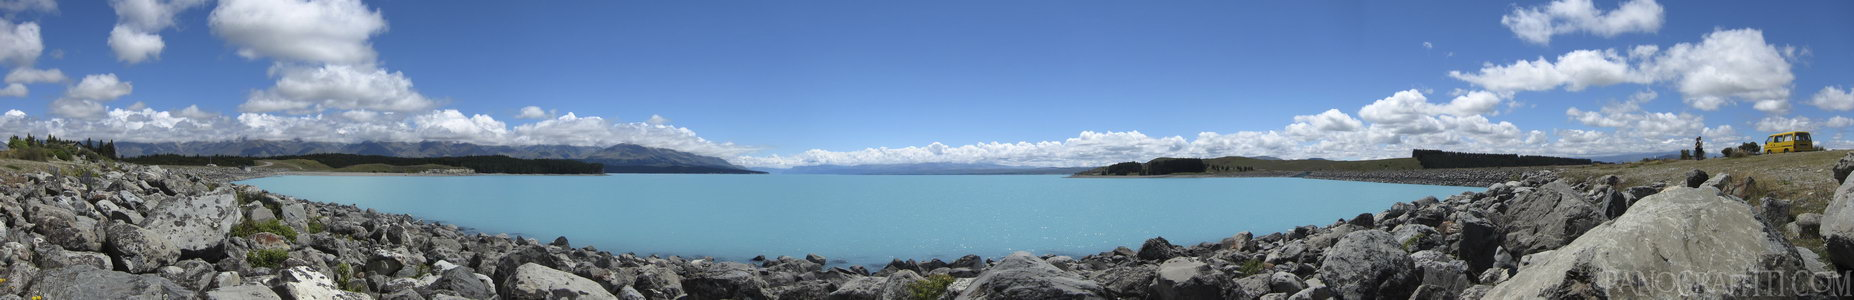 Mount Cook Across A Bright Blue Lake Pukaki - Stitched Panorama